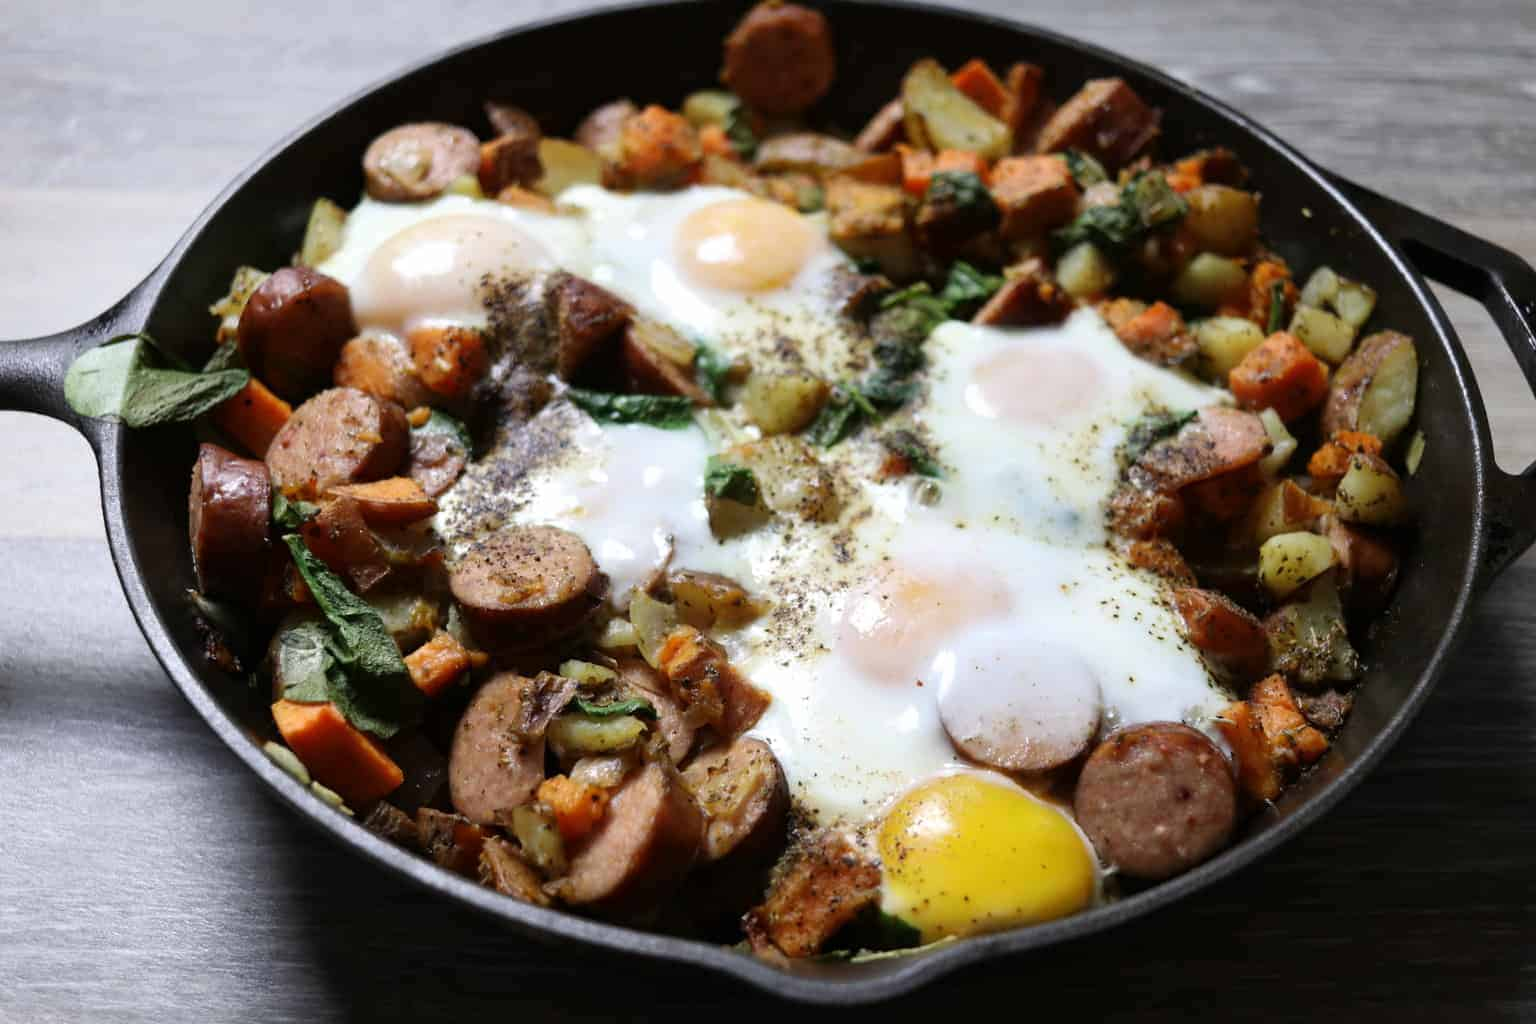 How to make a whole 30 approved polish sausage, sweet potatoes, egg hash. Easy whole 30 breakfast for family.